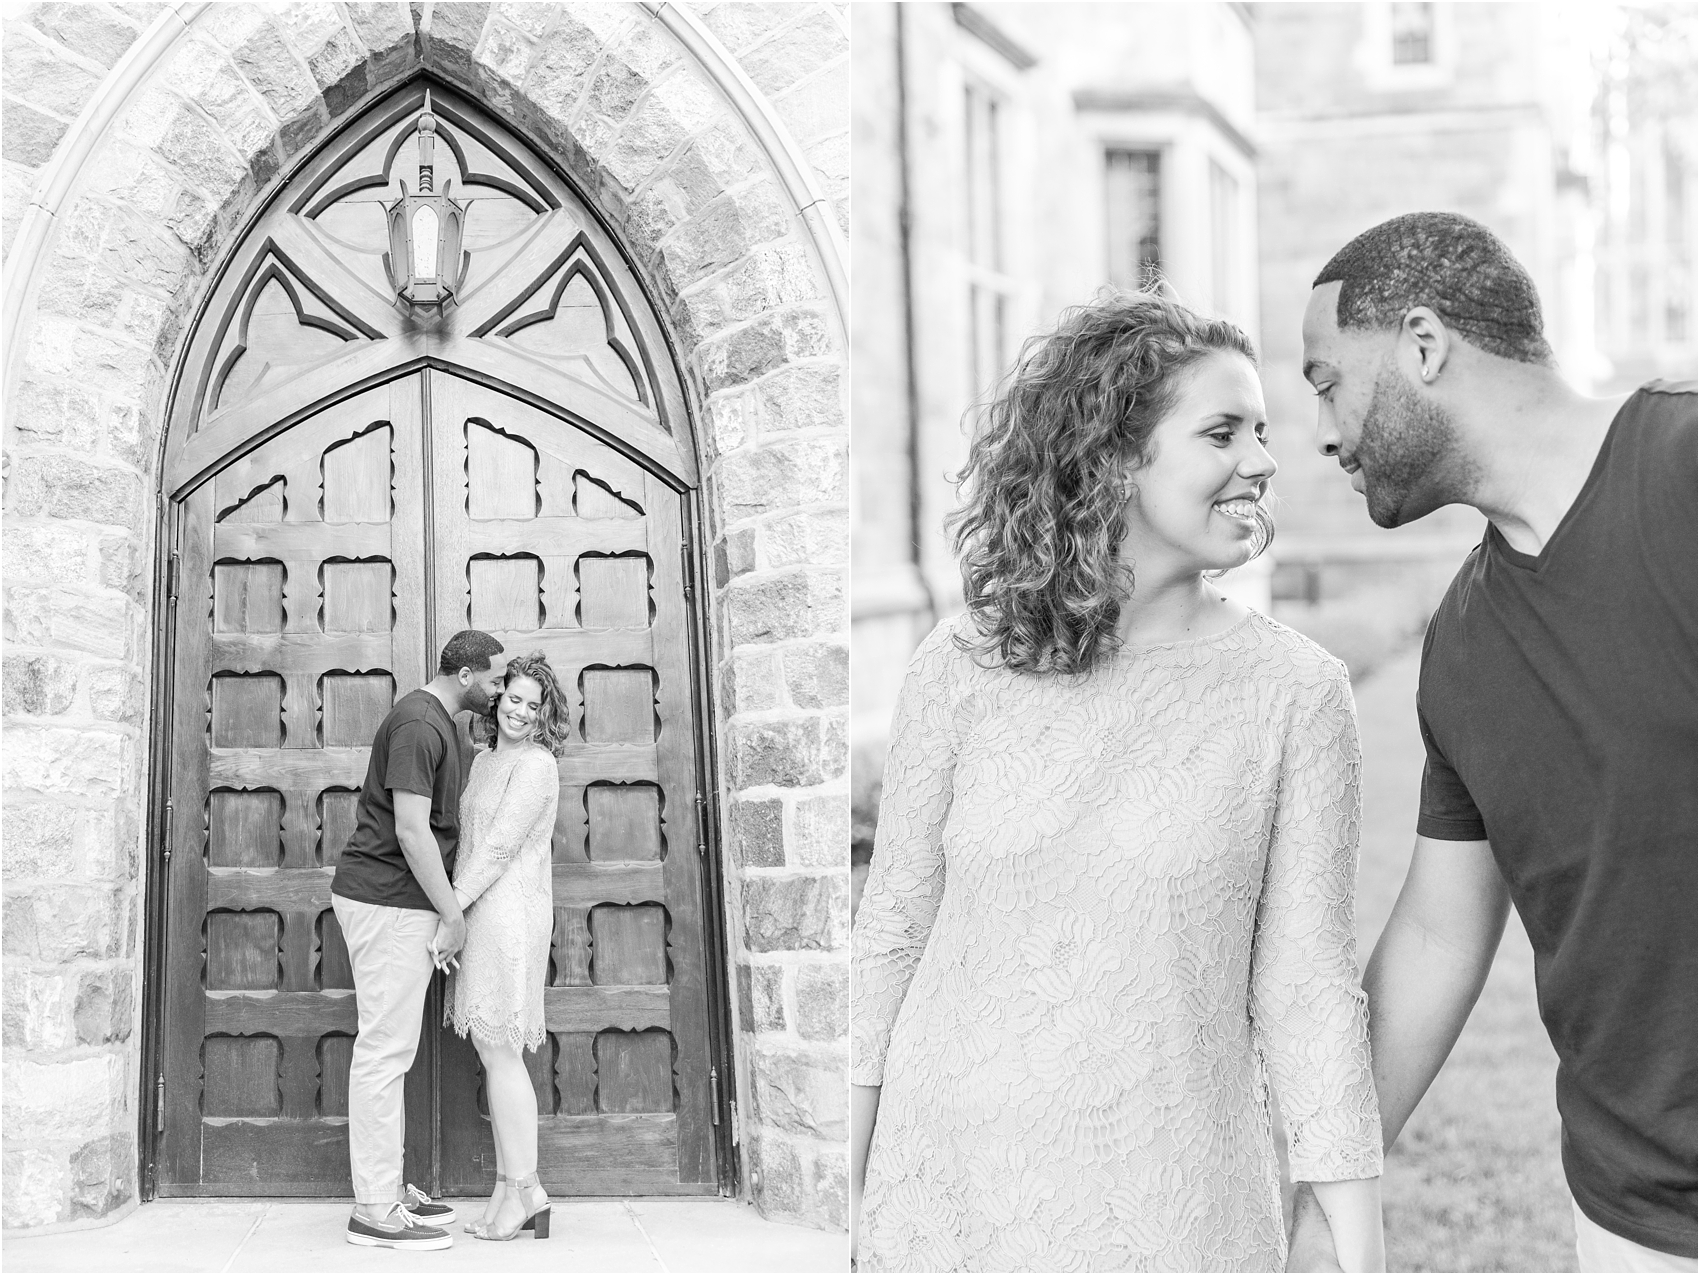 romantic-fun-university-of-michigan-engagement-photos-in-ann-arbor-mi-by-courtney-carolyn-photography_0002.jpg